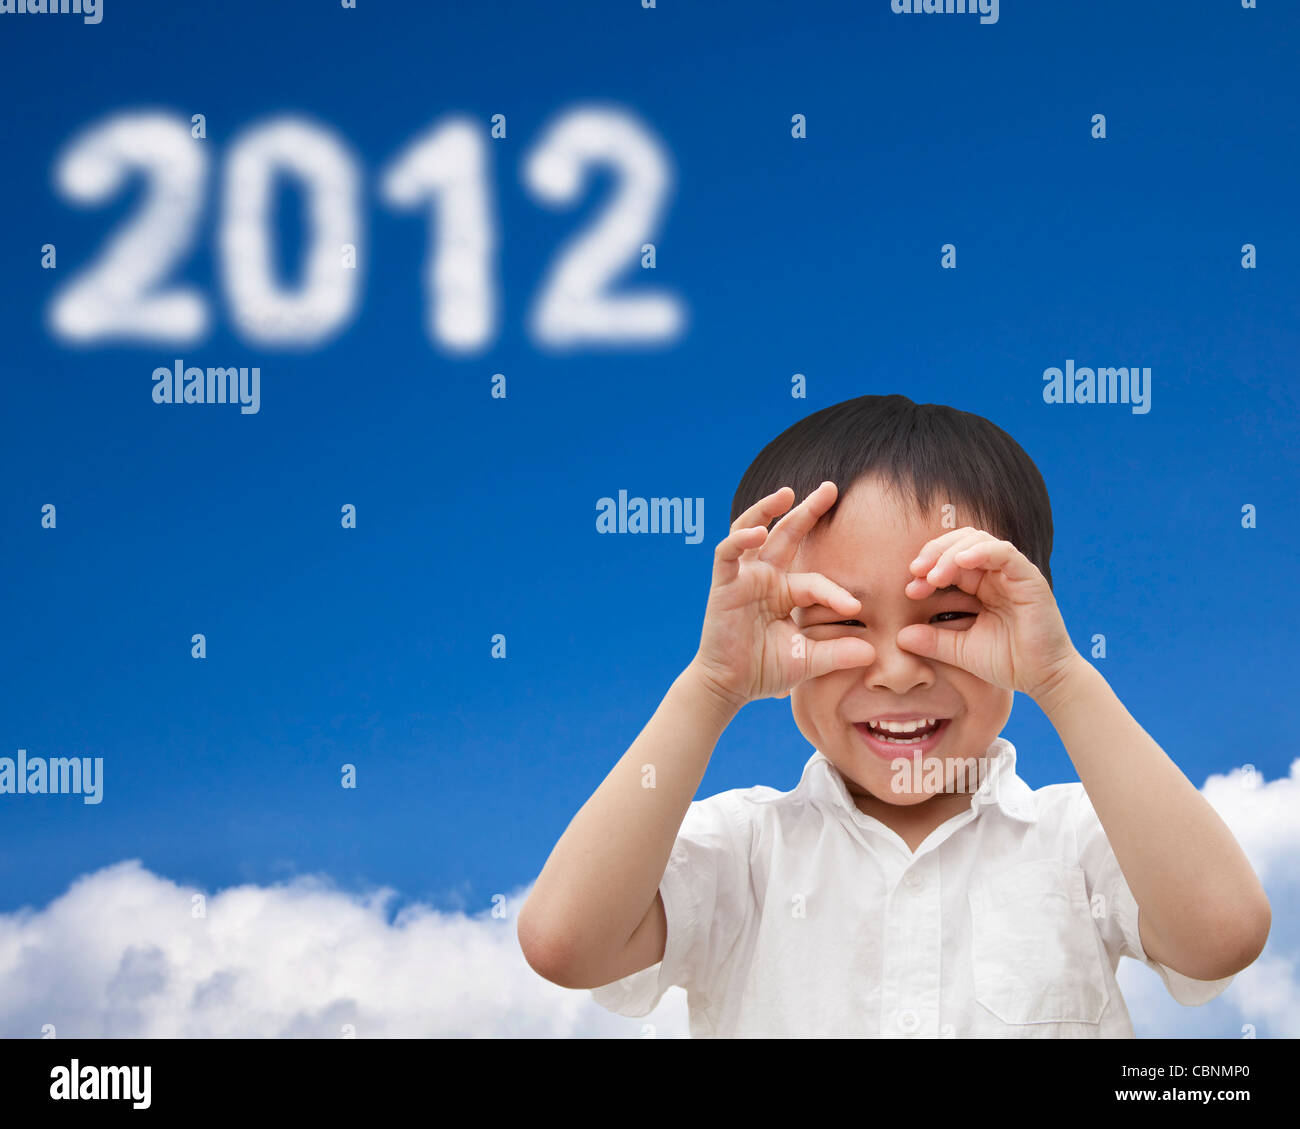 hand of happy kid make telescope shape and watching the cloud 2012 - Stock Image